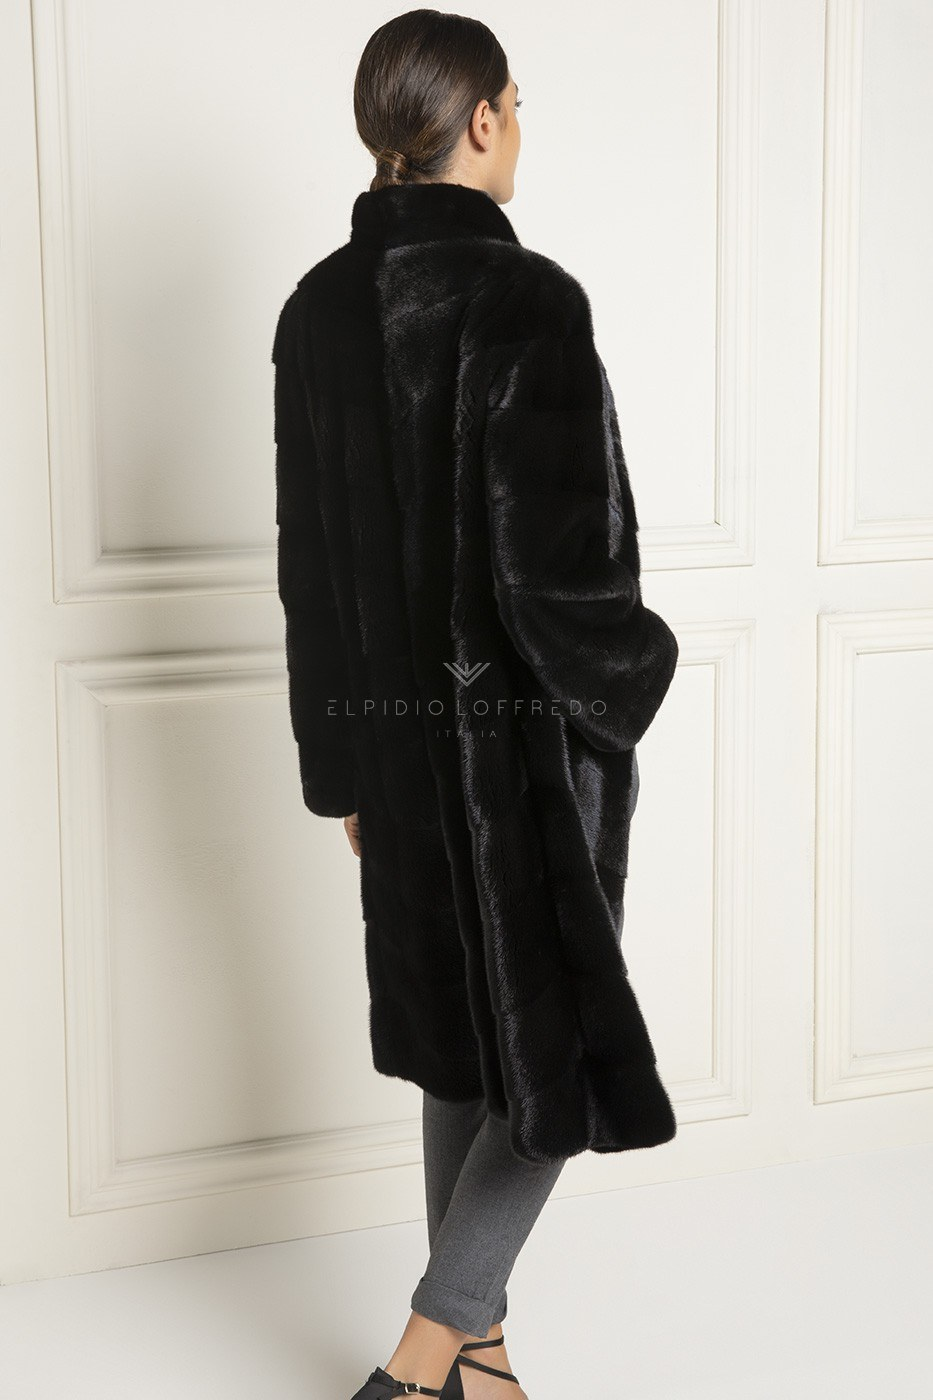 Blackglama female Mink Coat with Round Collar - Length 105 cm